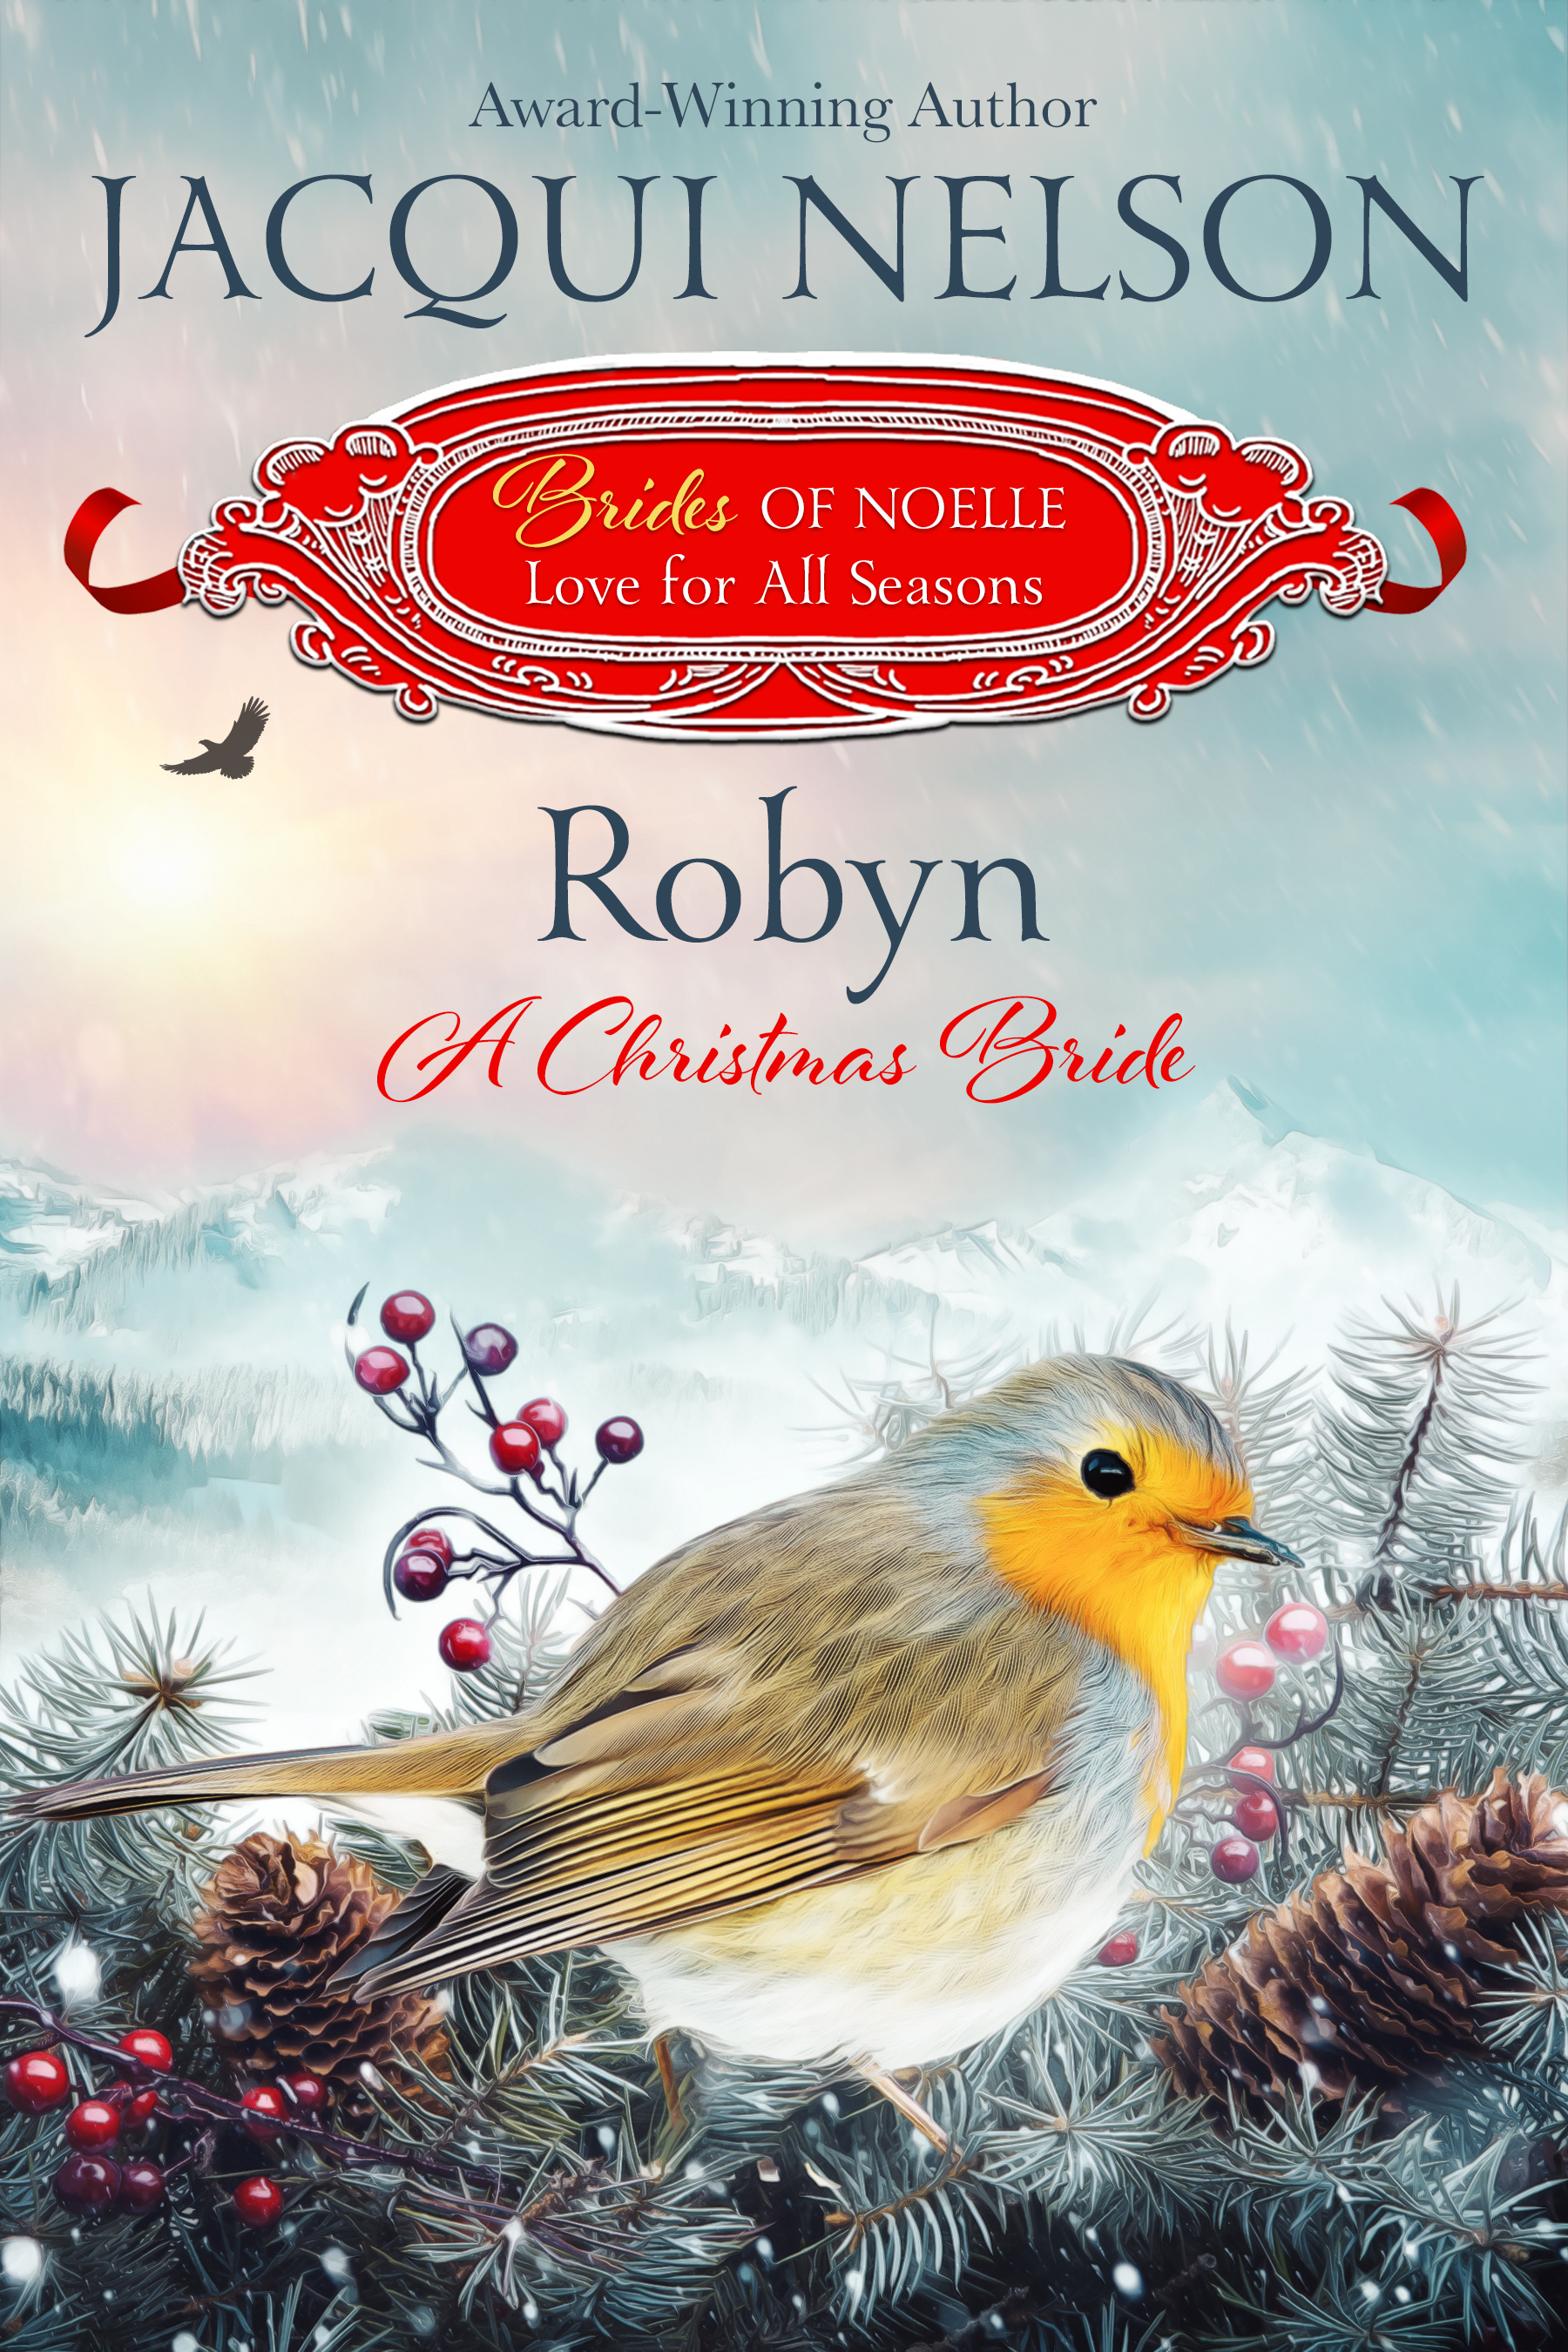 A Christmas Bride.Robyn A Christmas Bride Jacqui Nelson Wild West Author